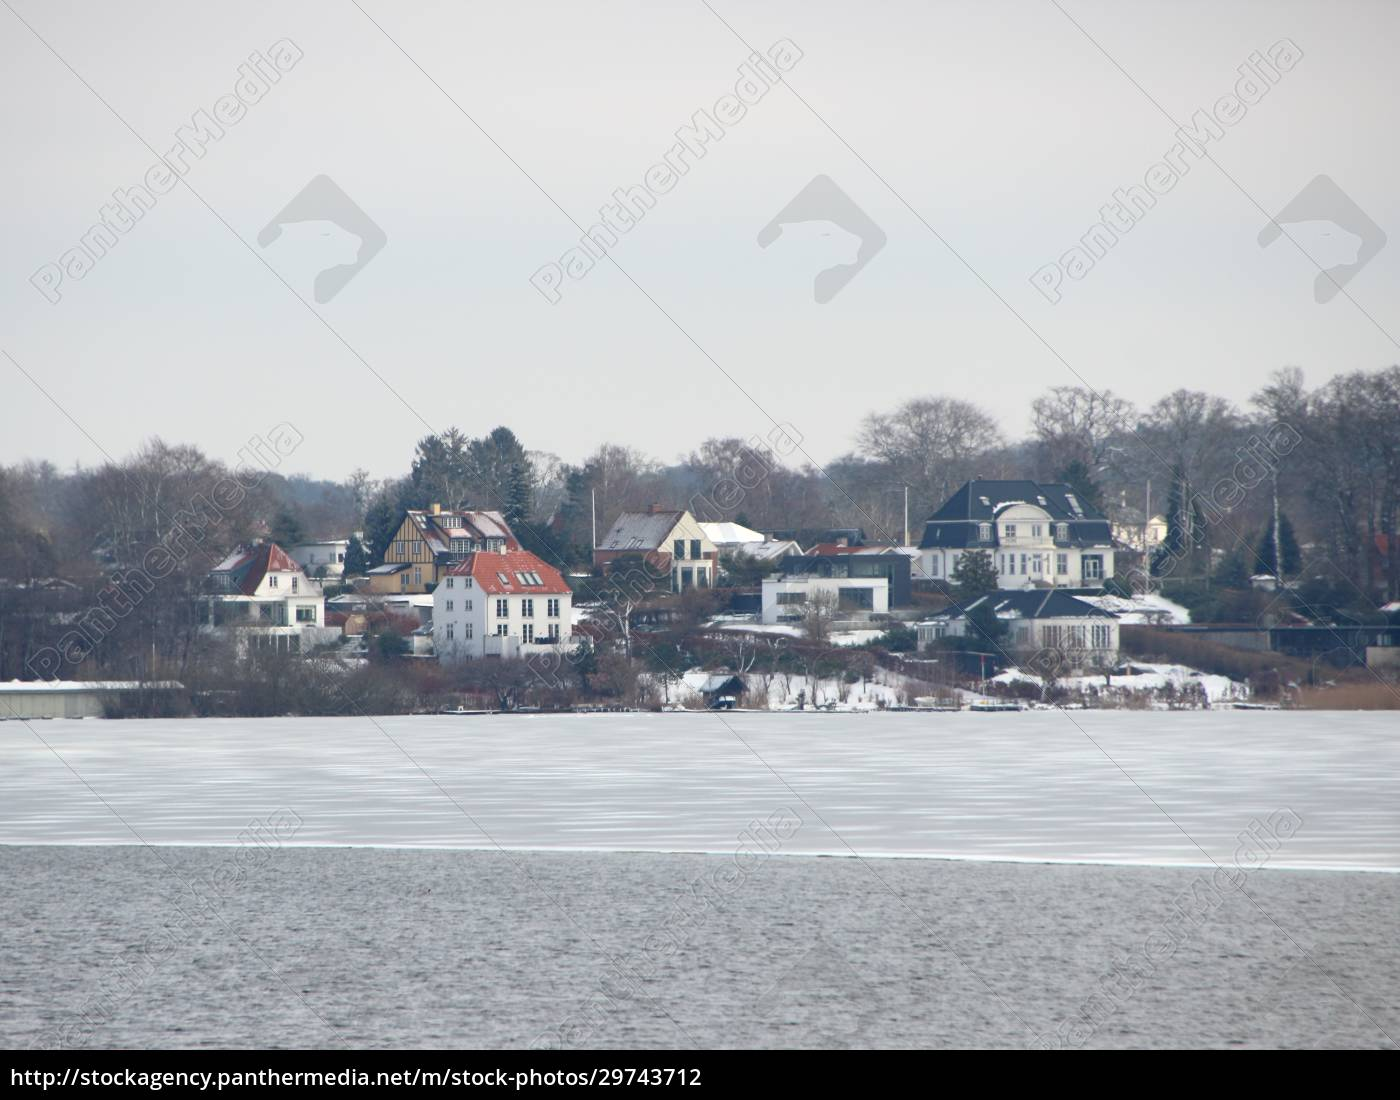 winter, lake, with, houses, water, and - 29743712